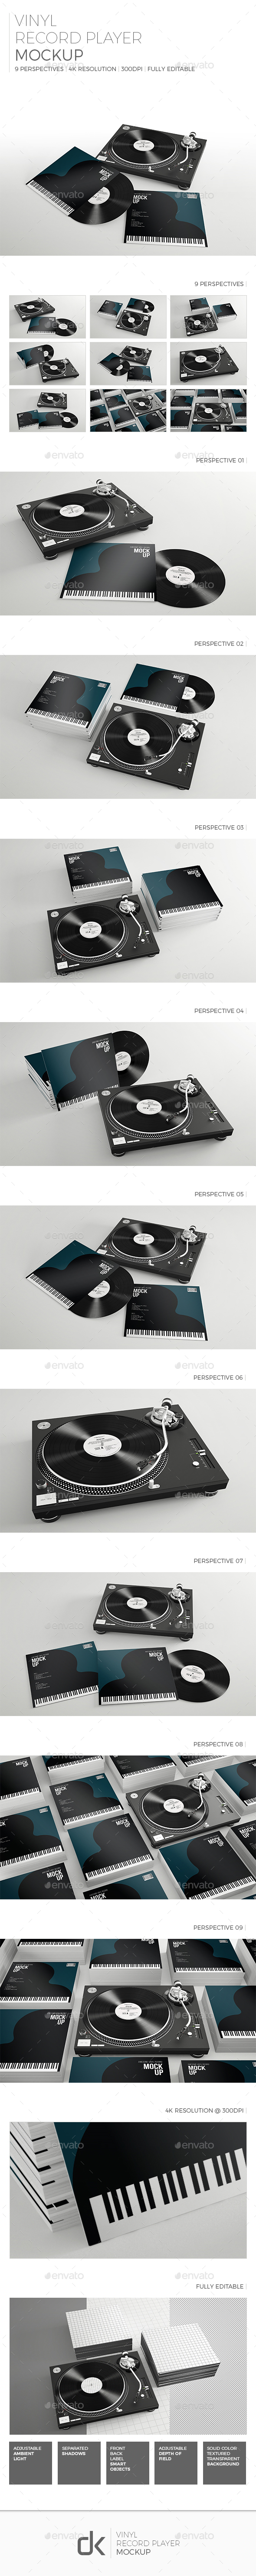 Realistic Vinyl Record & Player Mockup - Discs Packaging